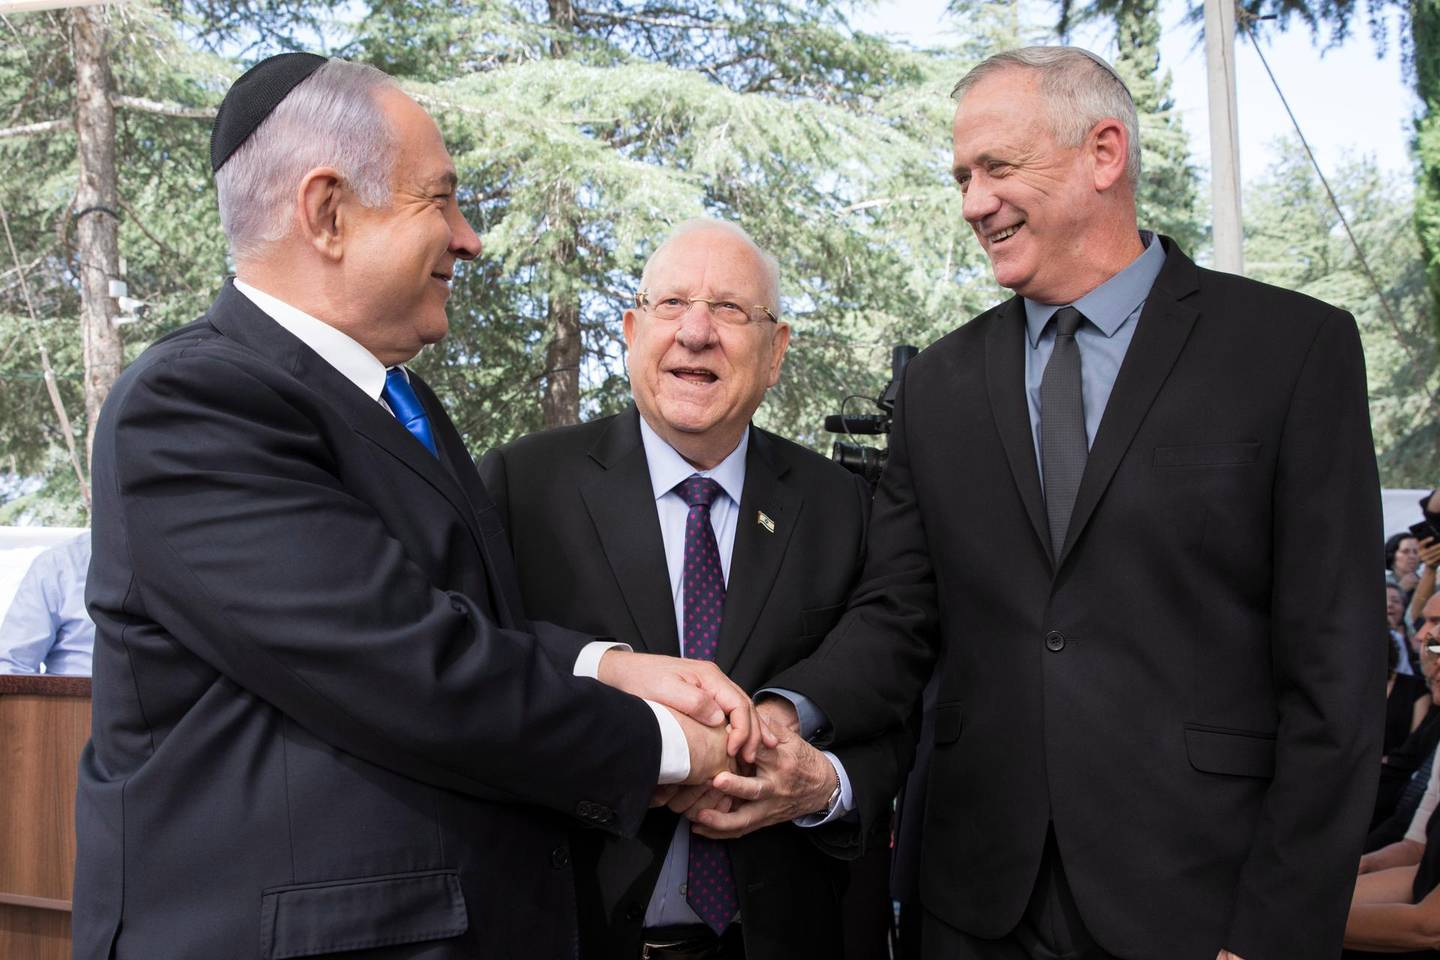 epa08373681 (FILE) -  Israeli Prime Minister Benjamin Netanyahu (L), Israeli President Reuven Rivlin (C) and Benny Gantz, former Israeli Army Chief of Staff and chairman of the Blue and White Israeli centrist political alliance (R) join hands as they attend a memorial service for late Israeli president Shimon Peres at Mount Herzl in Jerusalem, 19 September 2019(issued 04 April 2020). Media report that Netanyahu  and Gantz agreed to sign a coalition deal to form a government after three elections and to rotate the premiership.  EPA/ABIR SULTAN